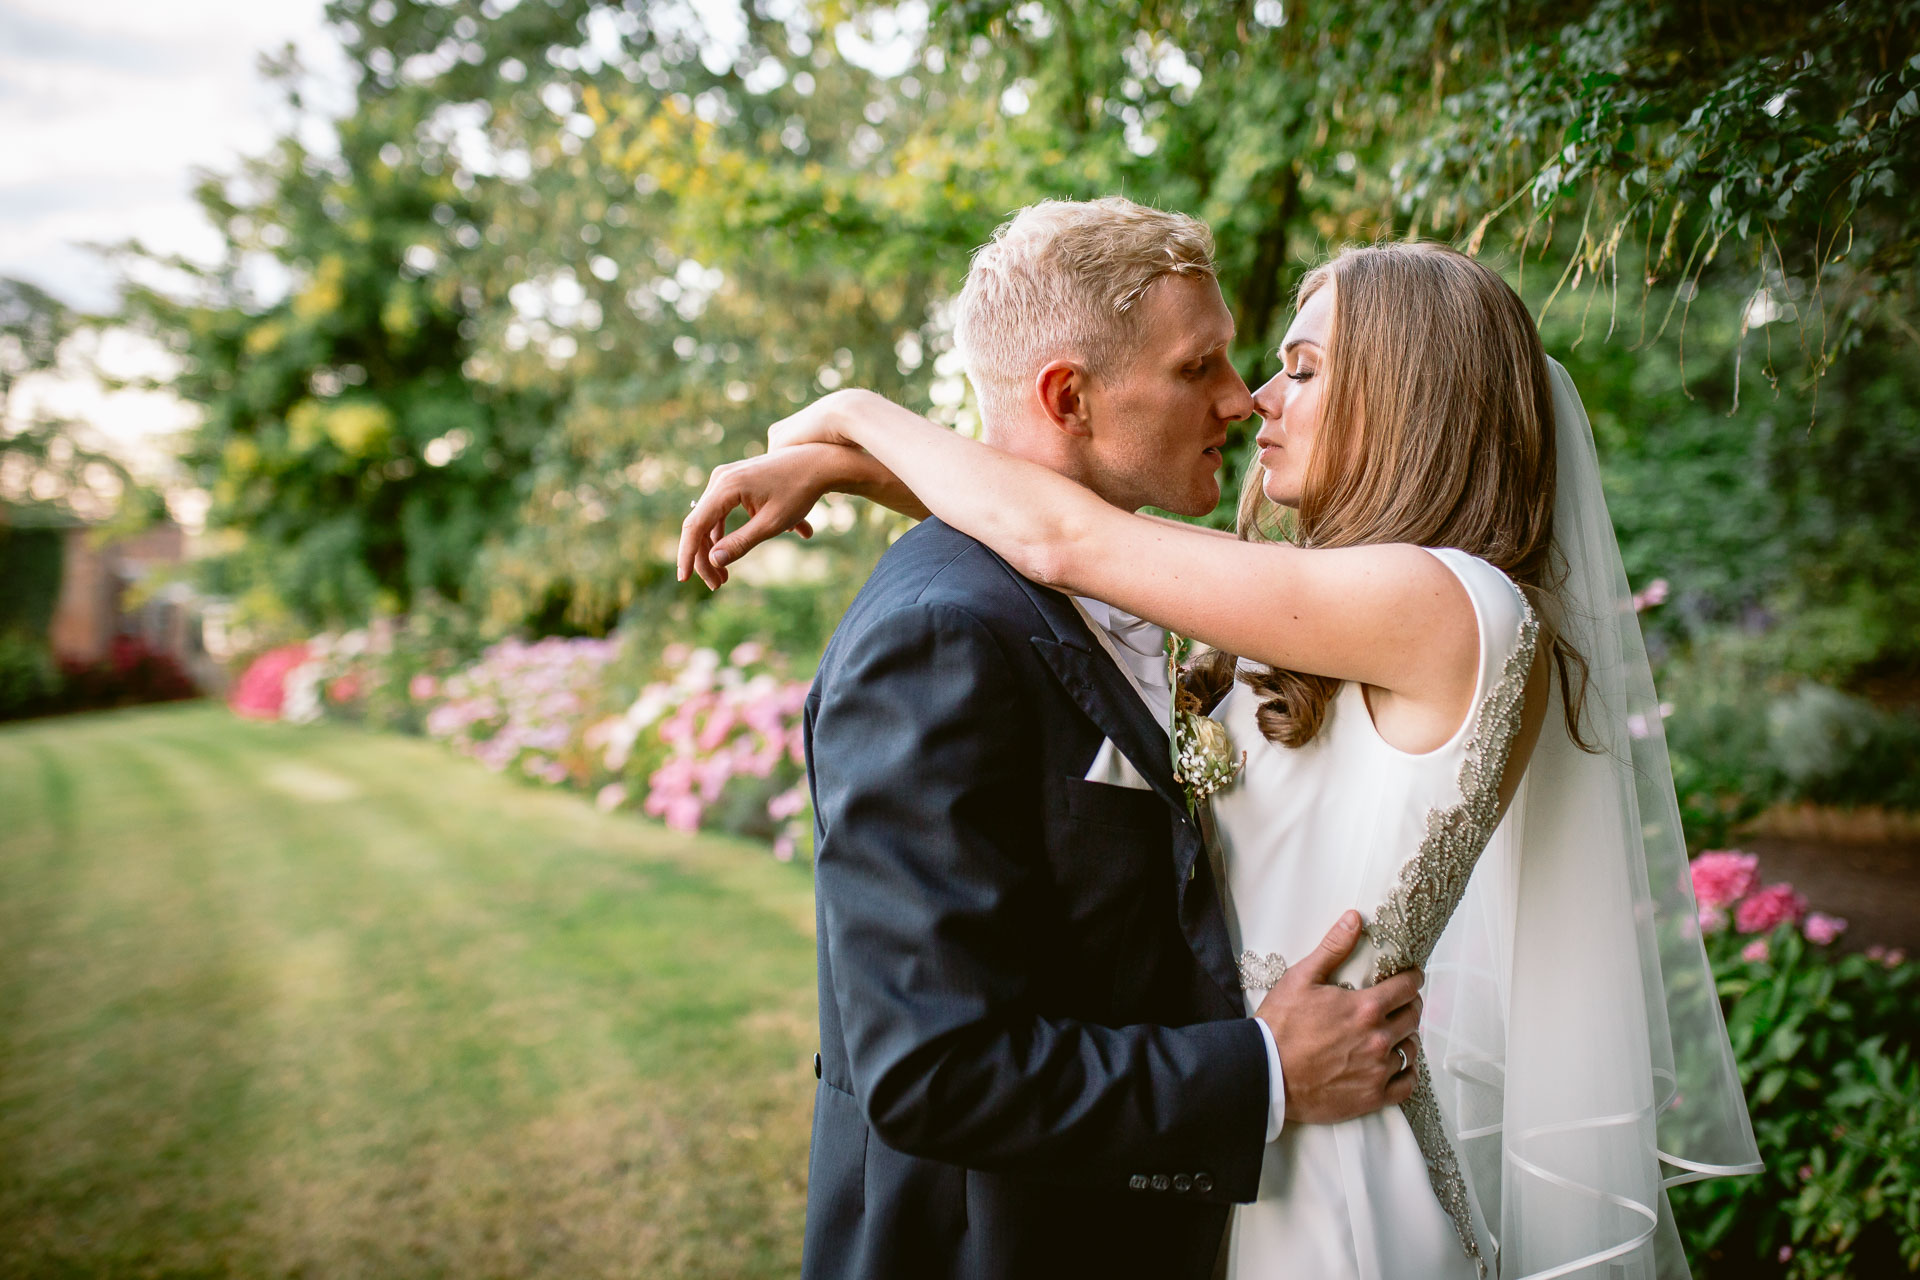 The Citadel wedding Shropshire Sarah_Jane and Steve brie and groom embracing each other and kissing in the garden